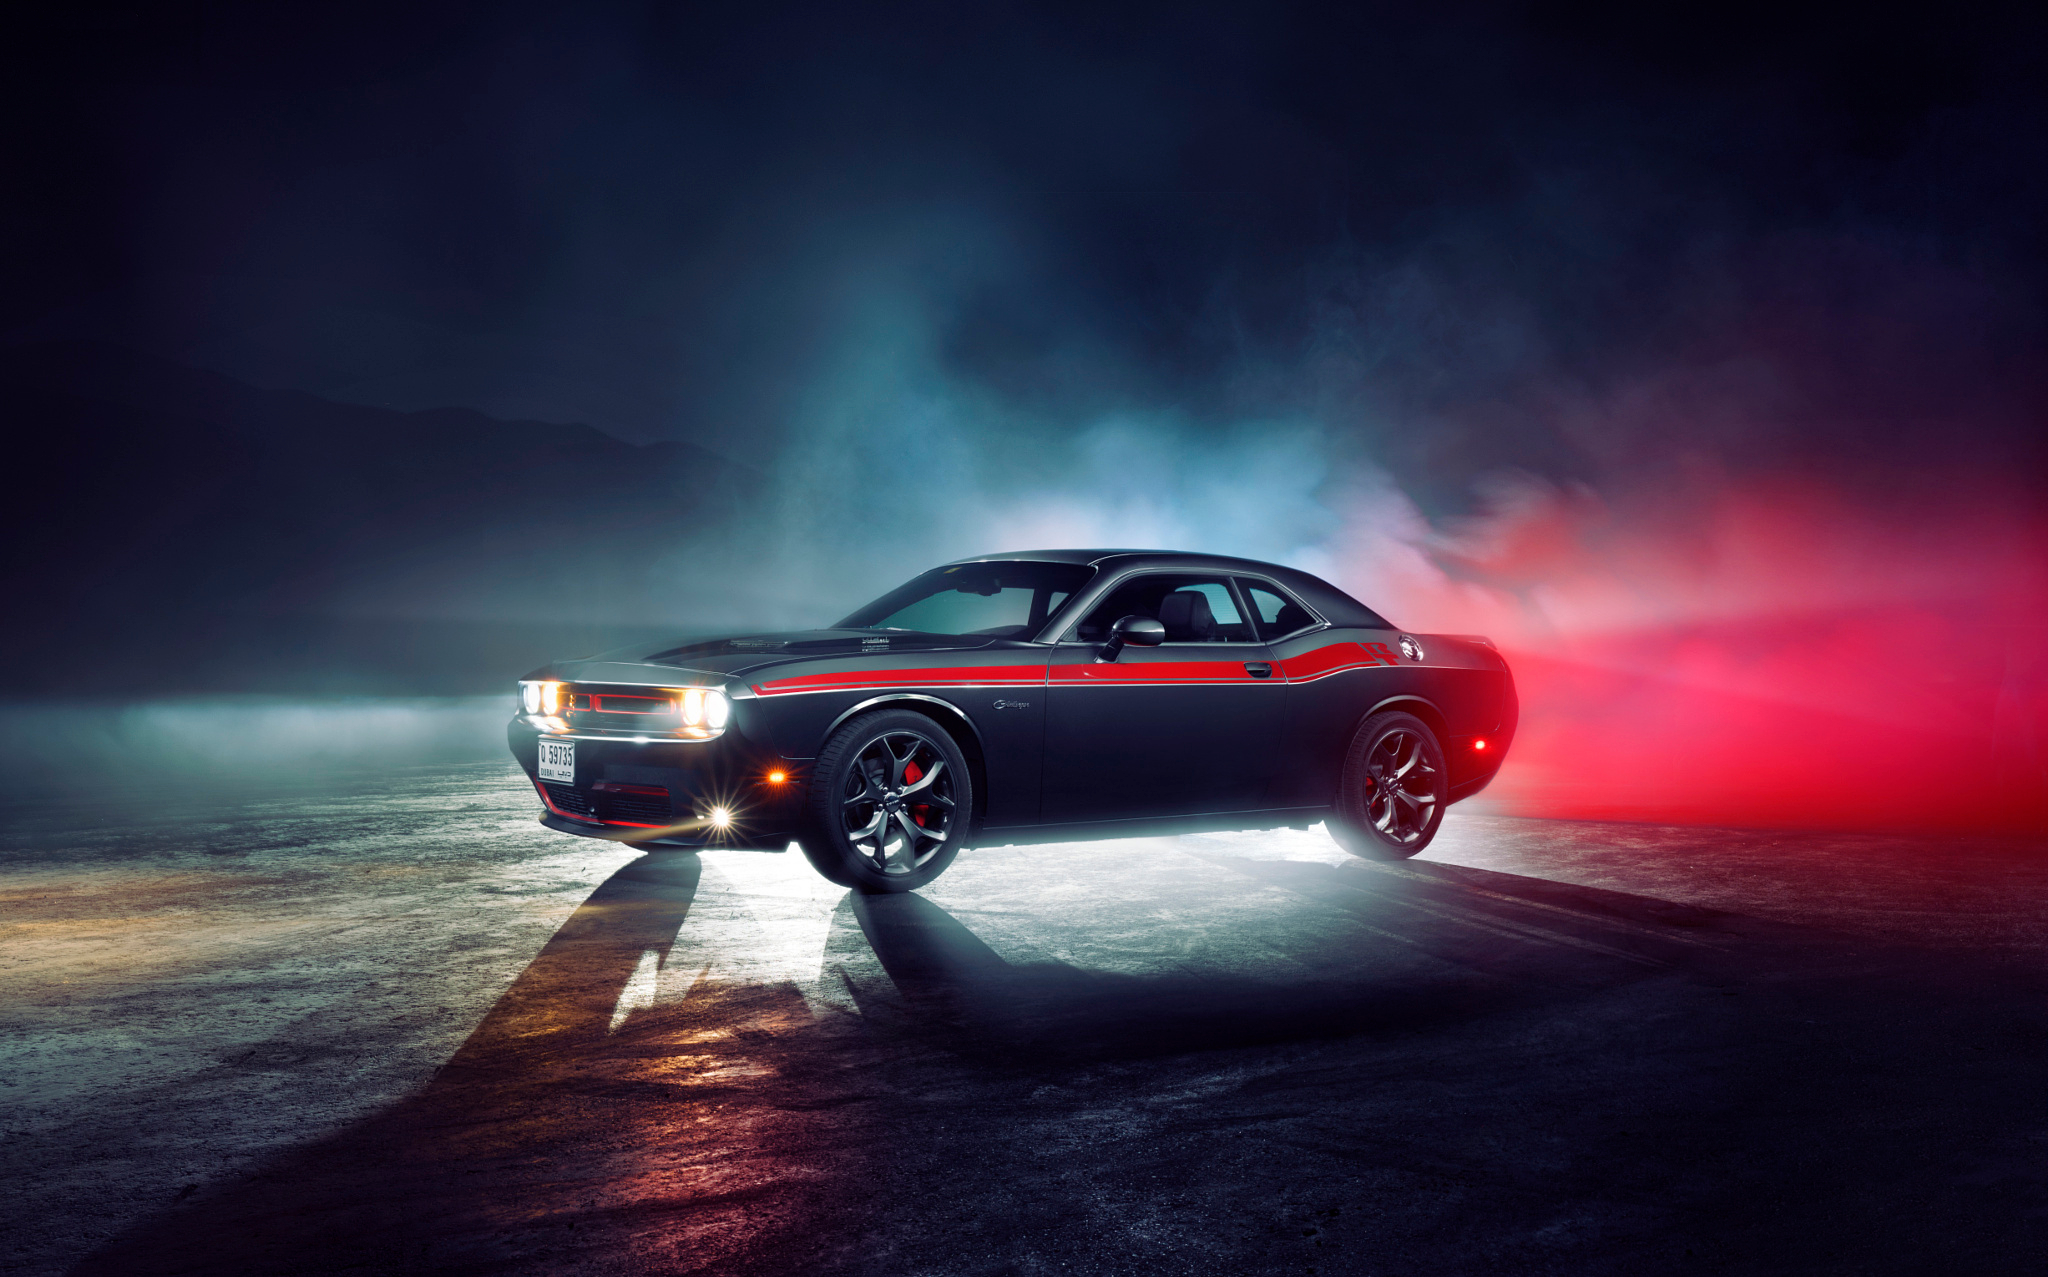 Dodge Challenger RT HD Wallpaper Background Image 2048x1277 2048x1277